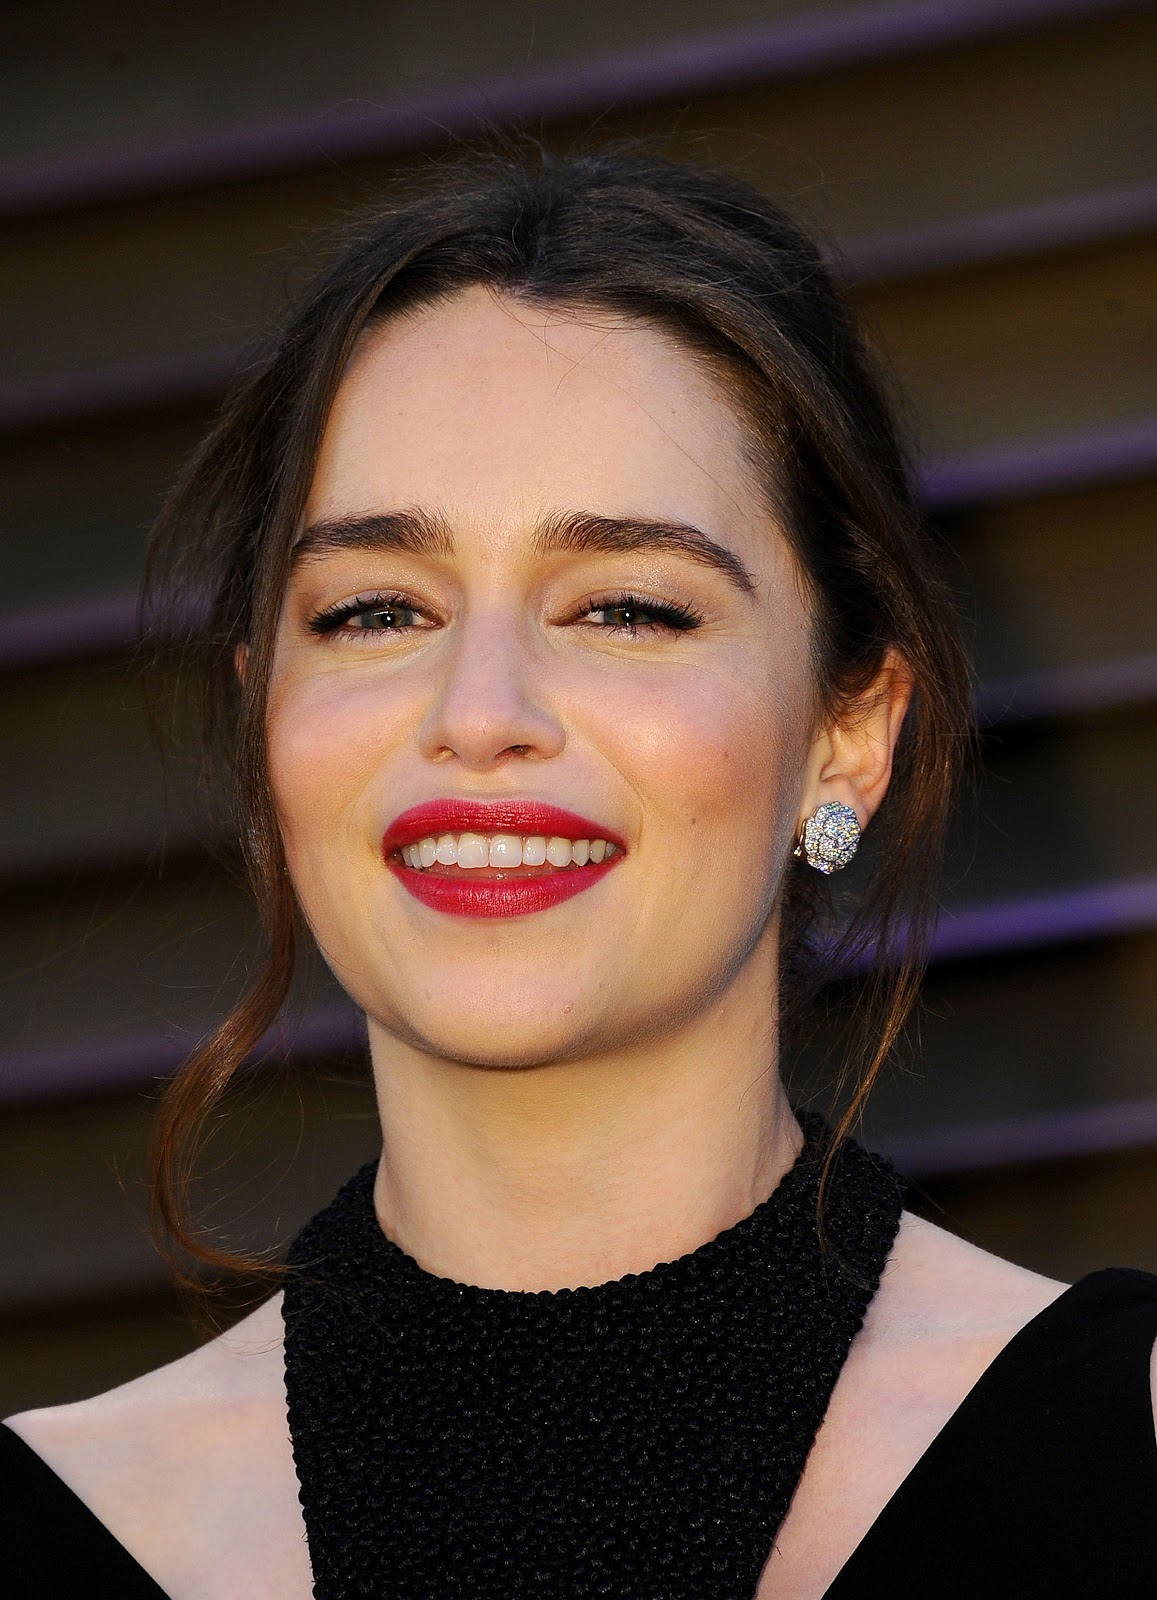 Terminator Genisys Actress Emilia Clarke Full HD Images and Wallpapers